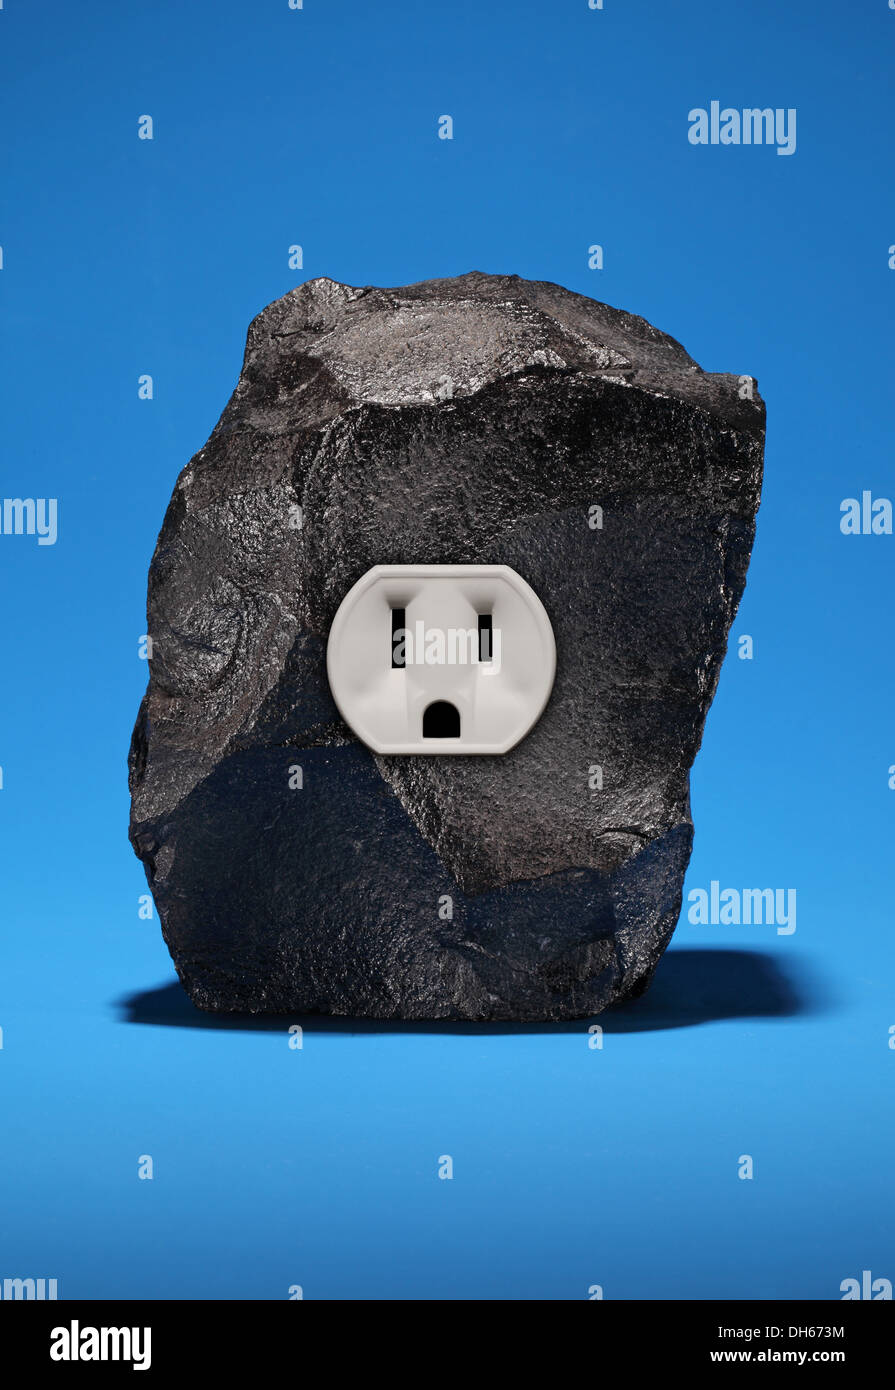 A large piece of black coal with a single electrical outlet. Bright blue background Stock Photo